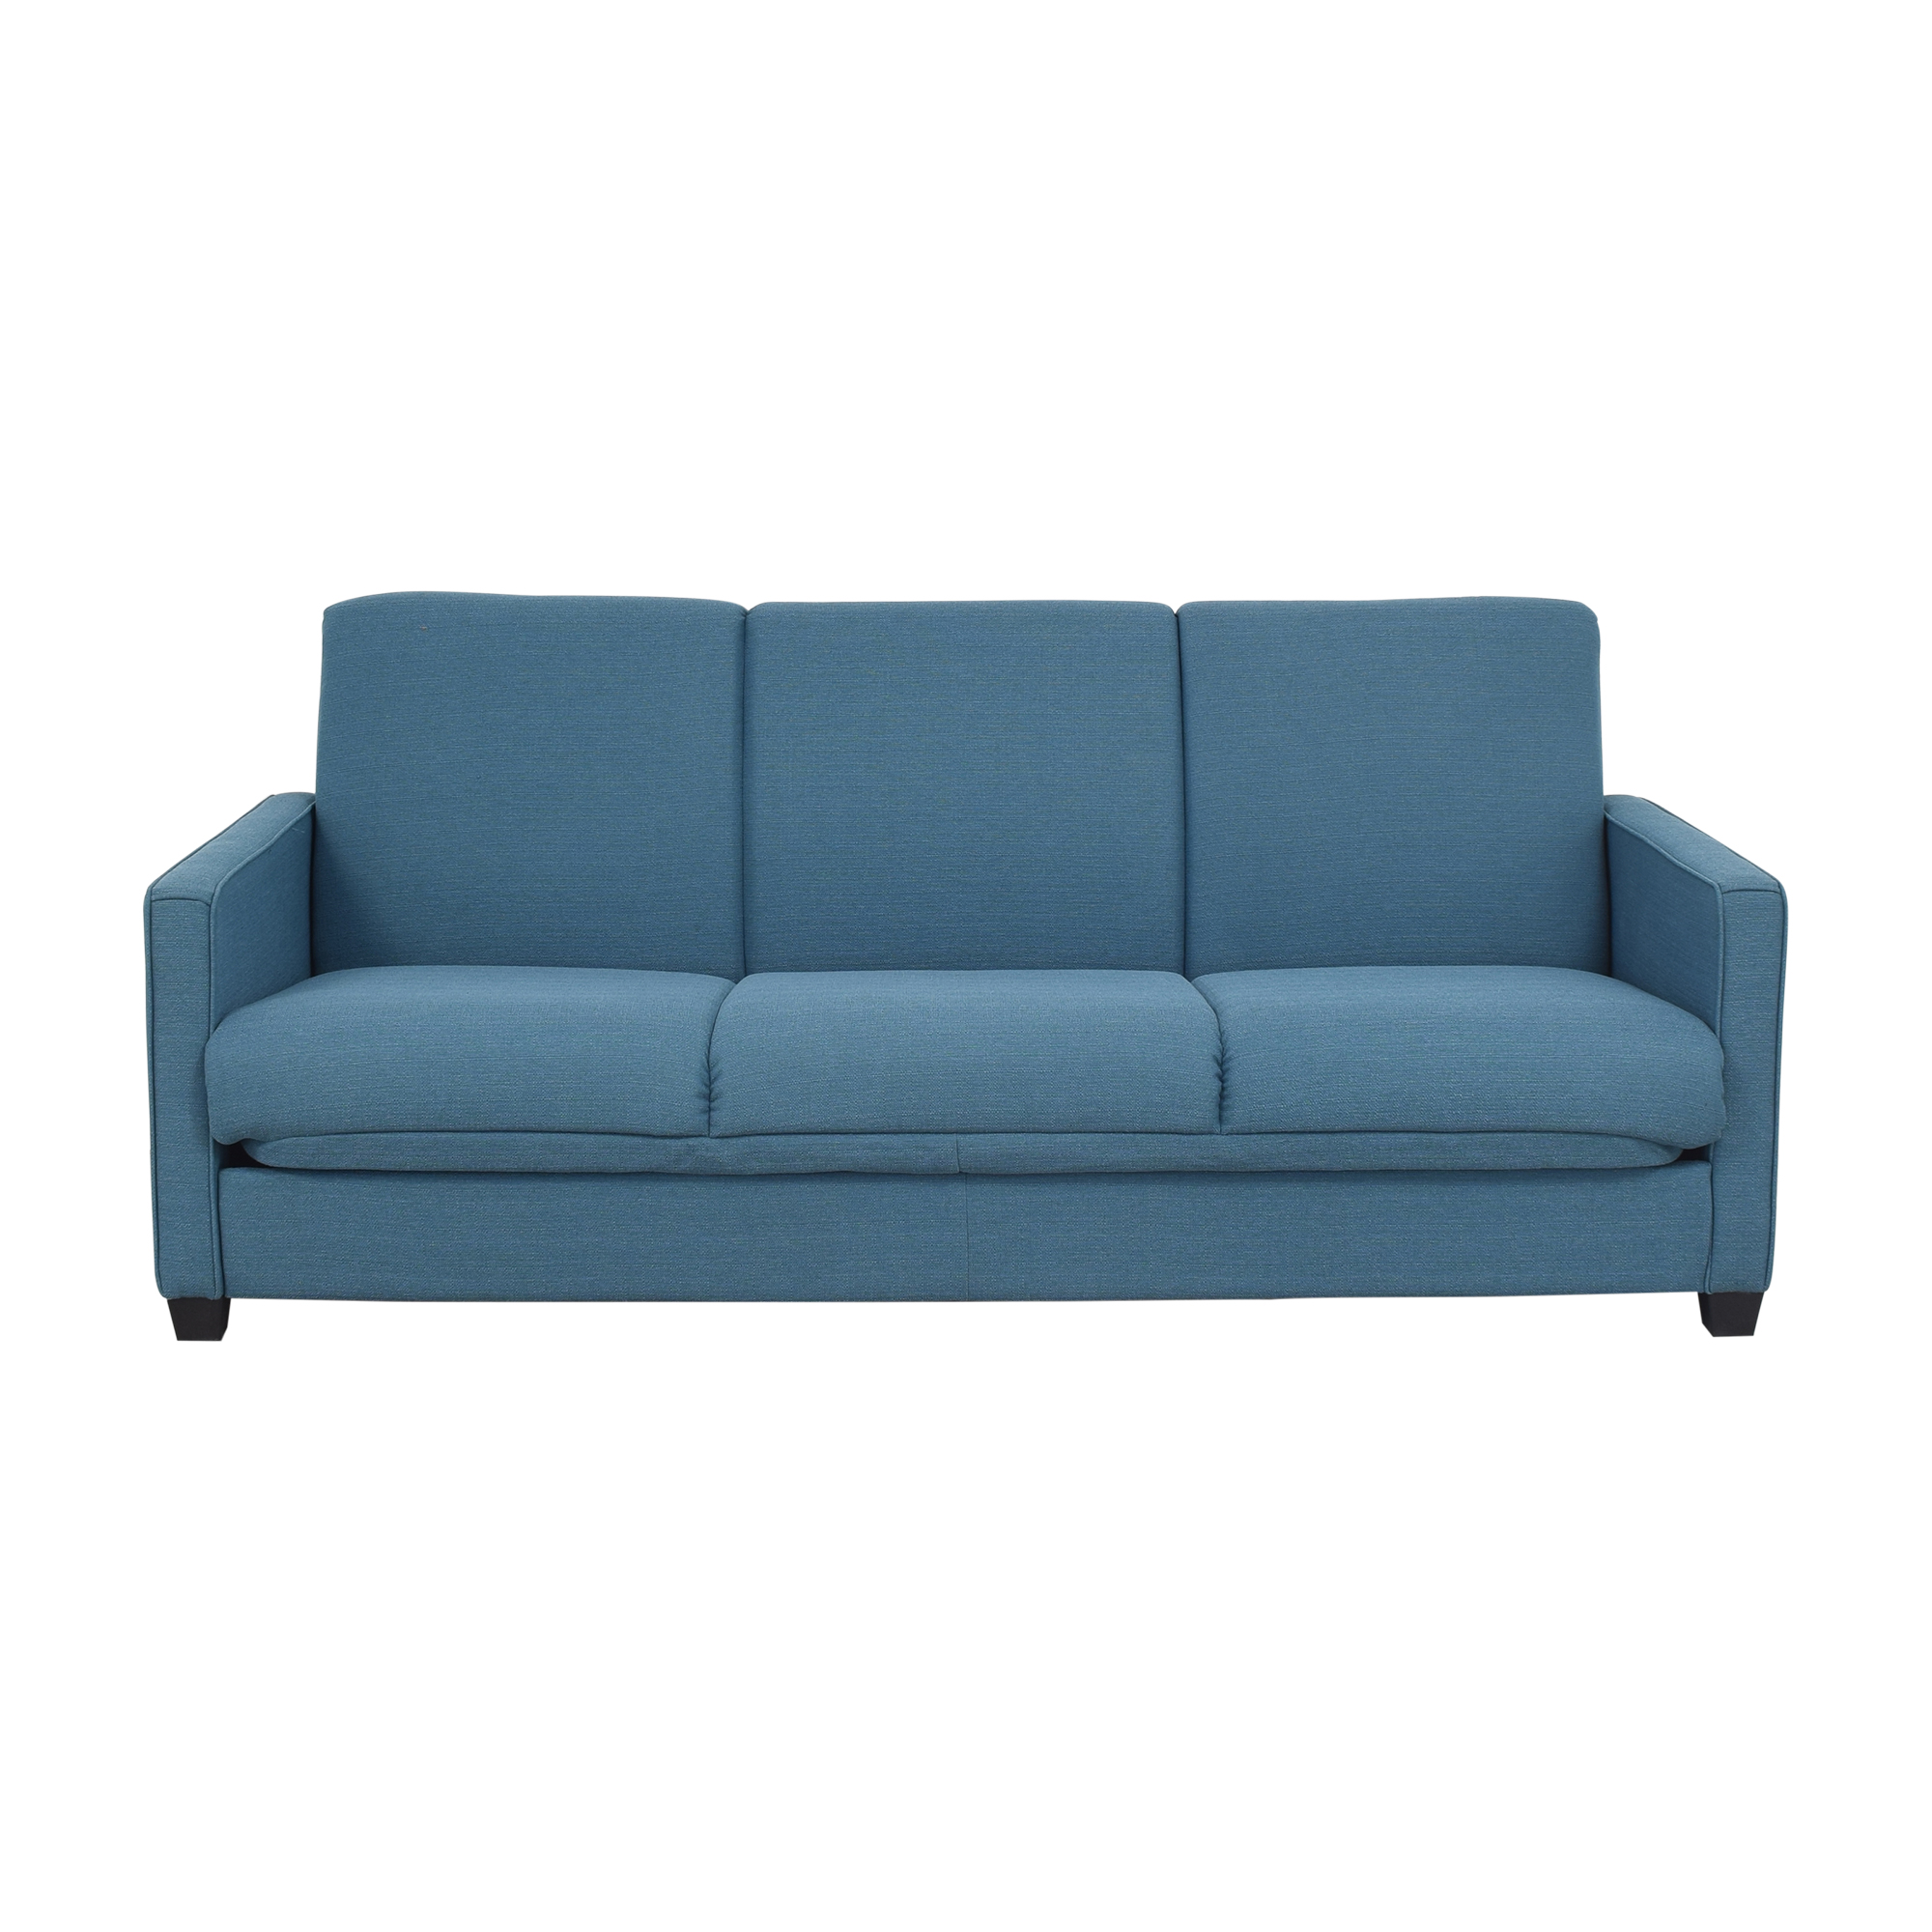 buy Wayfair Braden Studio Swiger Convertible Sleeper Sofa Wayfair Sofas